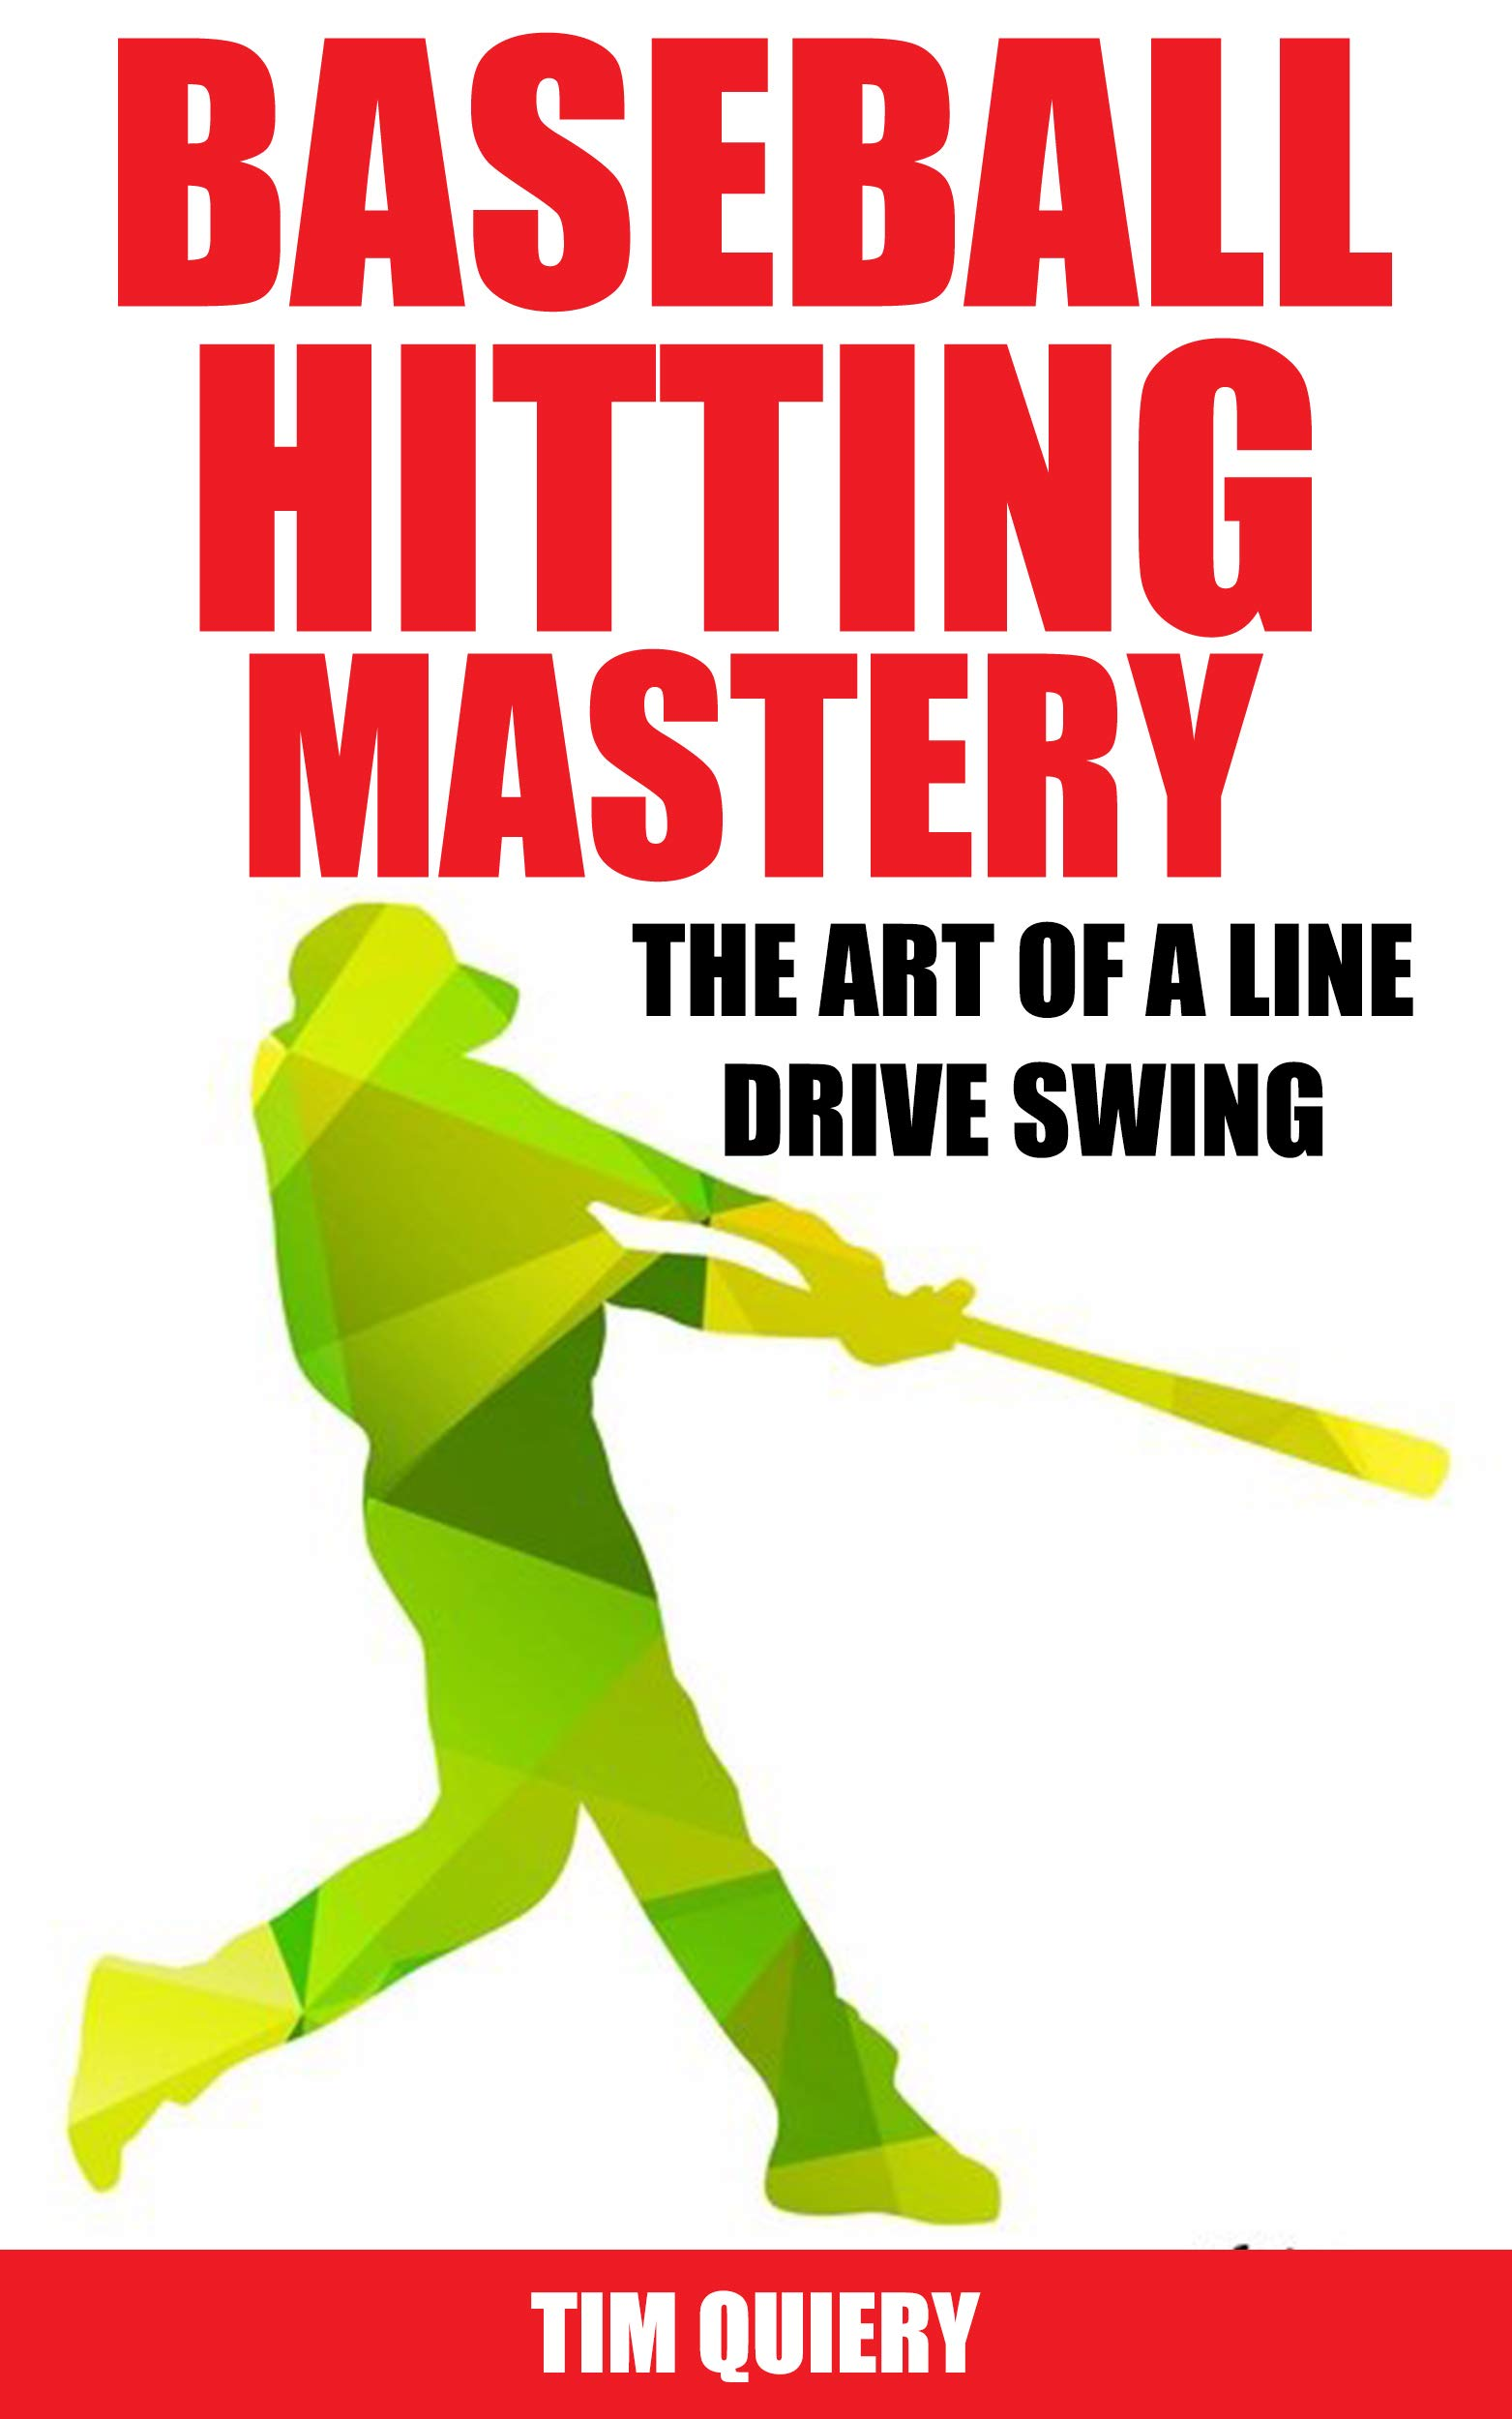 Image OfBaseball Hitting Mastery: The Art Of A Line Drive Swing (English Edition)